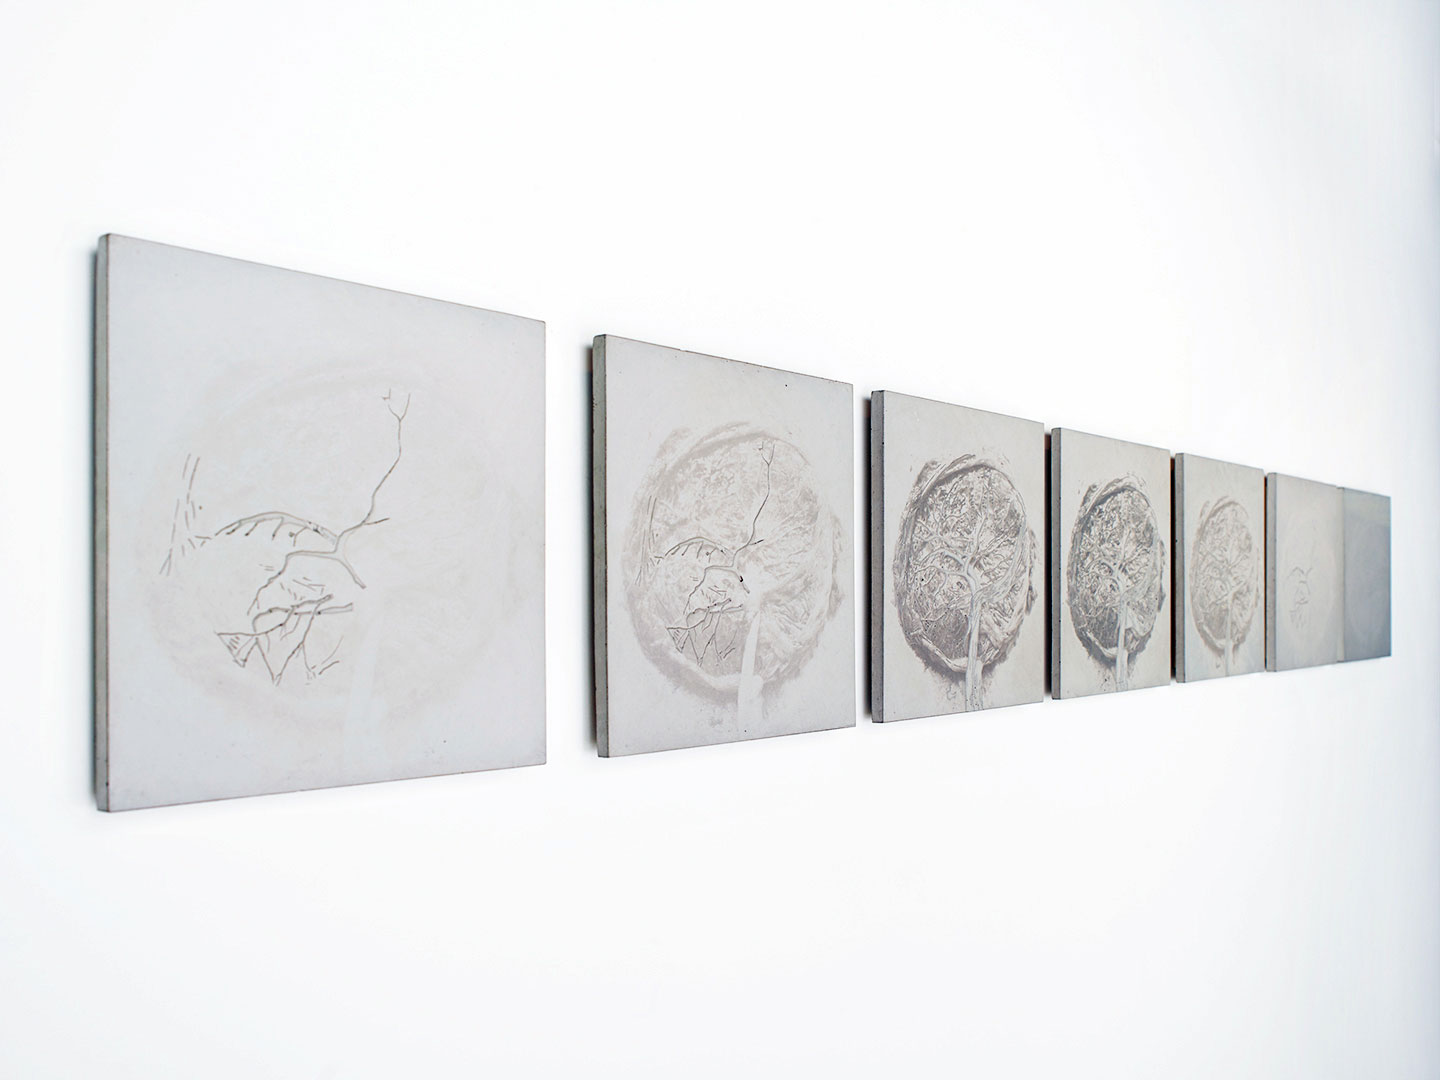 Wall sculptures of cement relief squares by Zoe Buckman on display at Garis & Hahn Gallery in New York City.